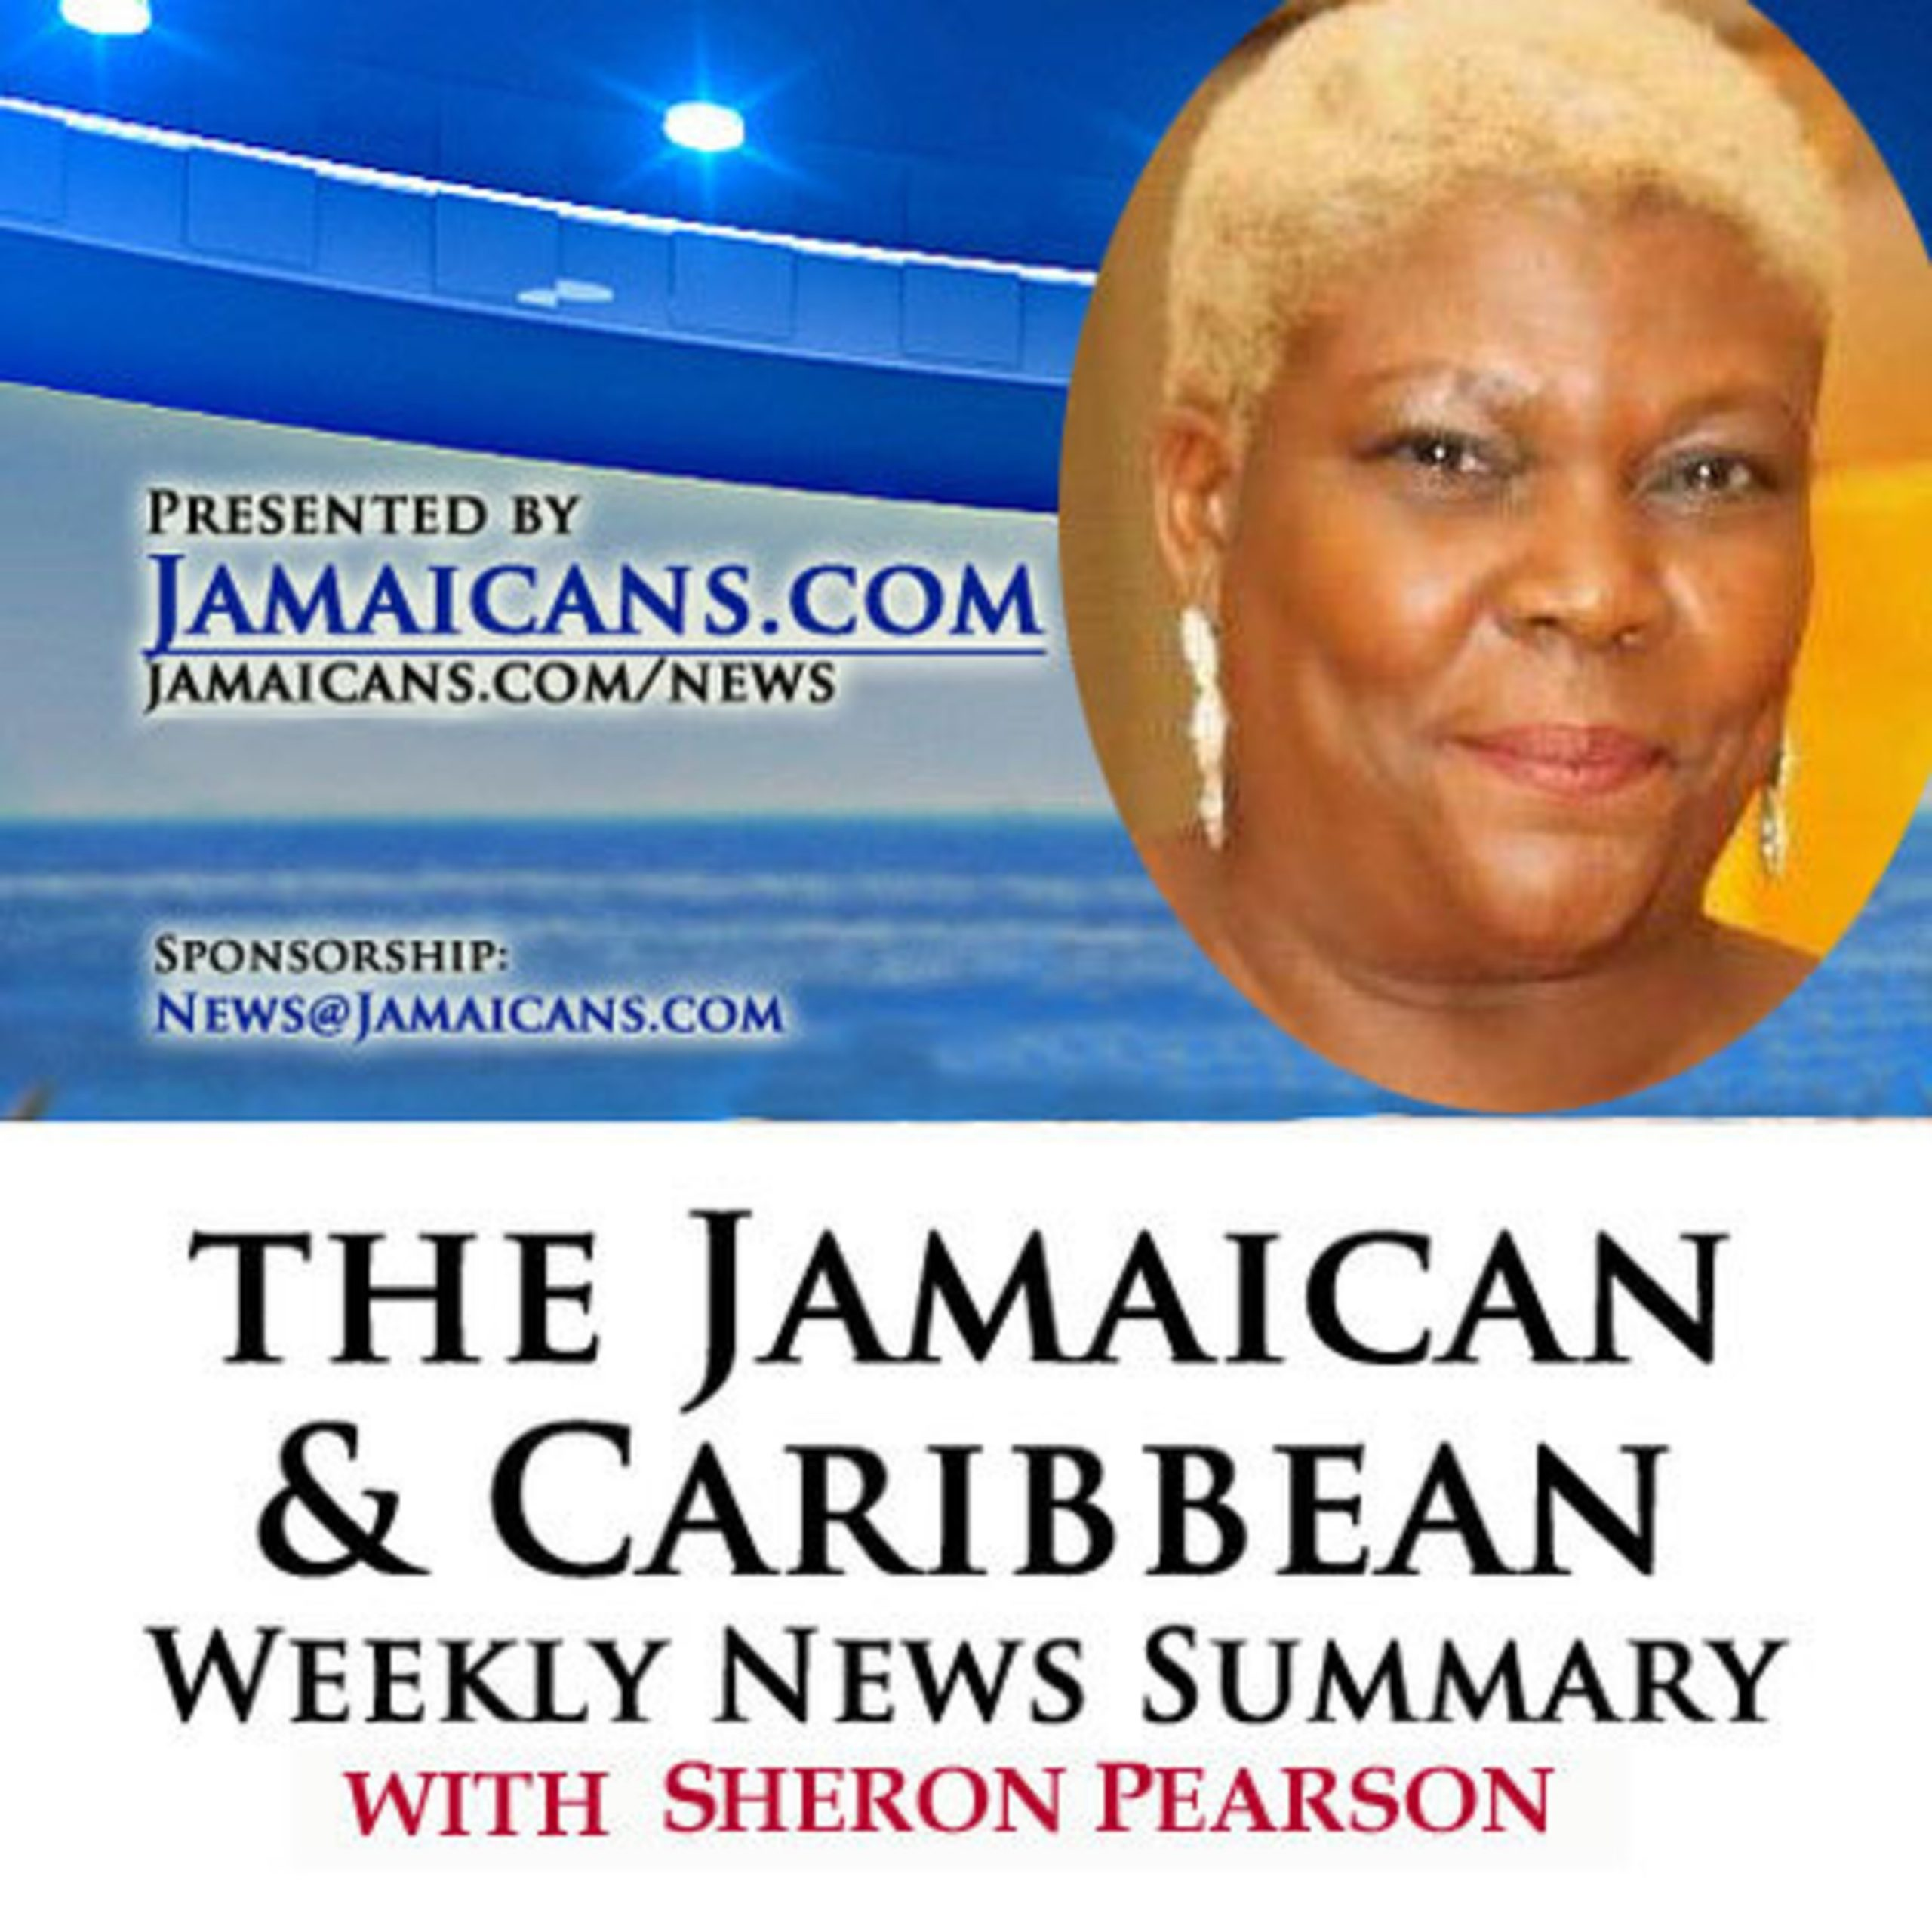 This is the Podcast of 7 Jamaican & Caribbean News Stories You May Have missed for the week ending September 6 2019.